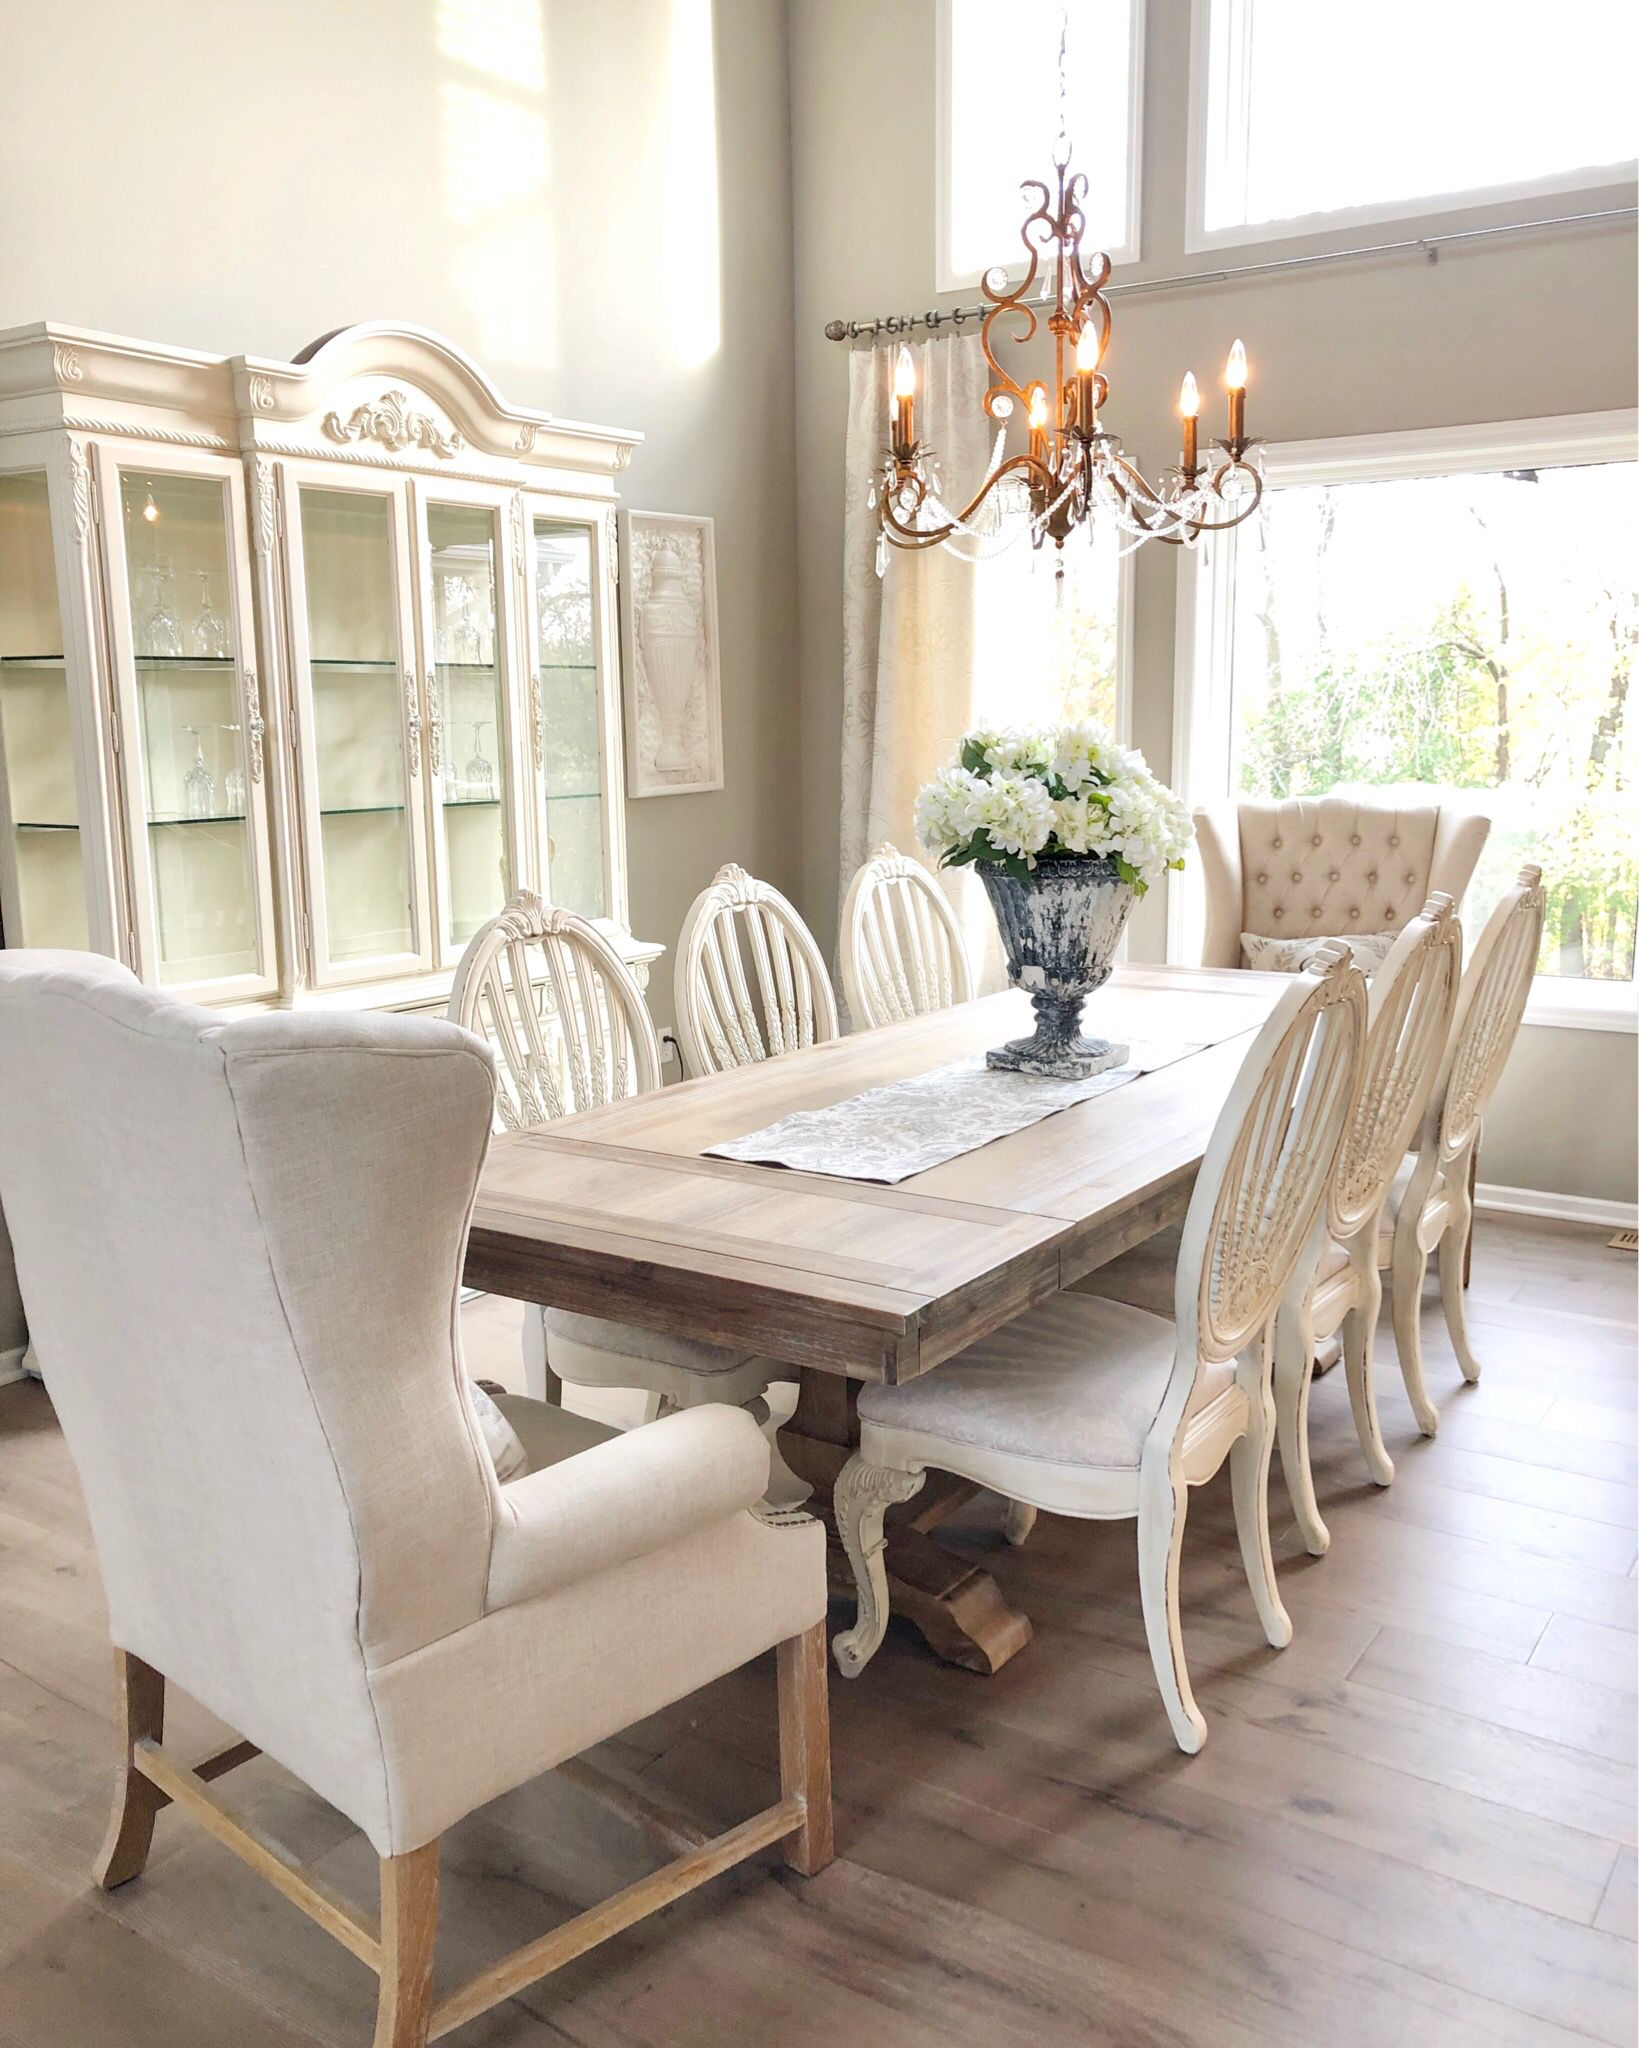 Pin by Styled with Lace on Dinning Spaces | French country ...